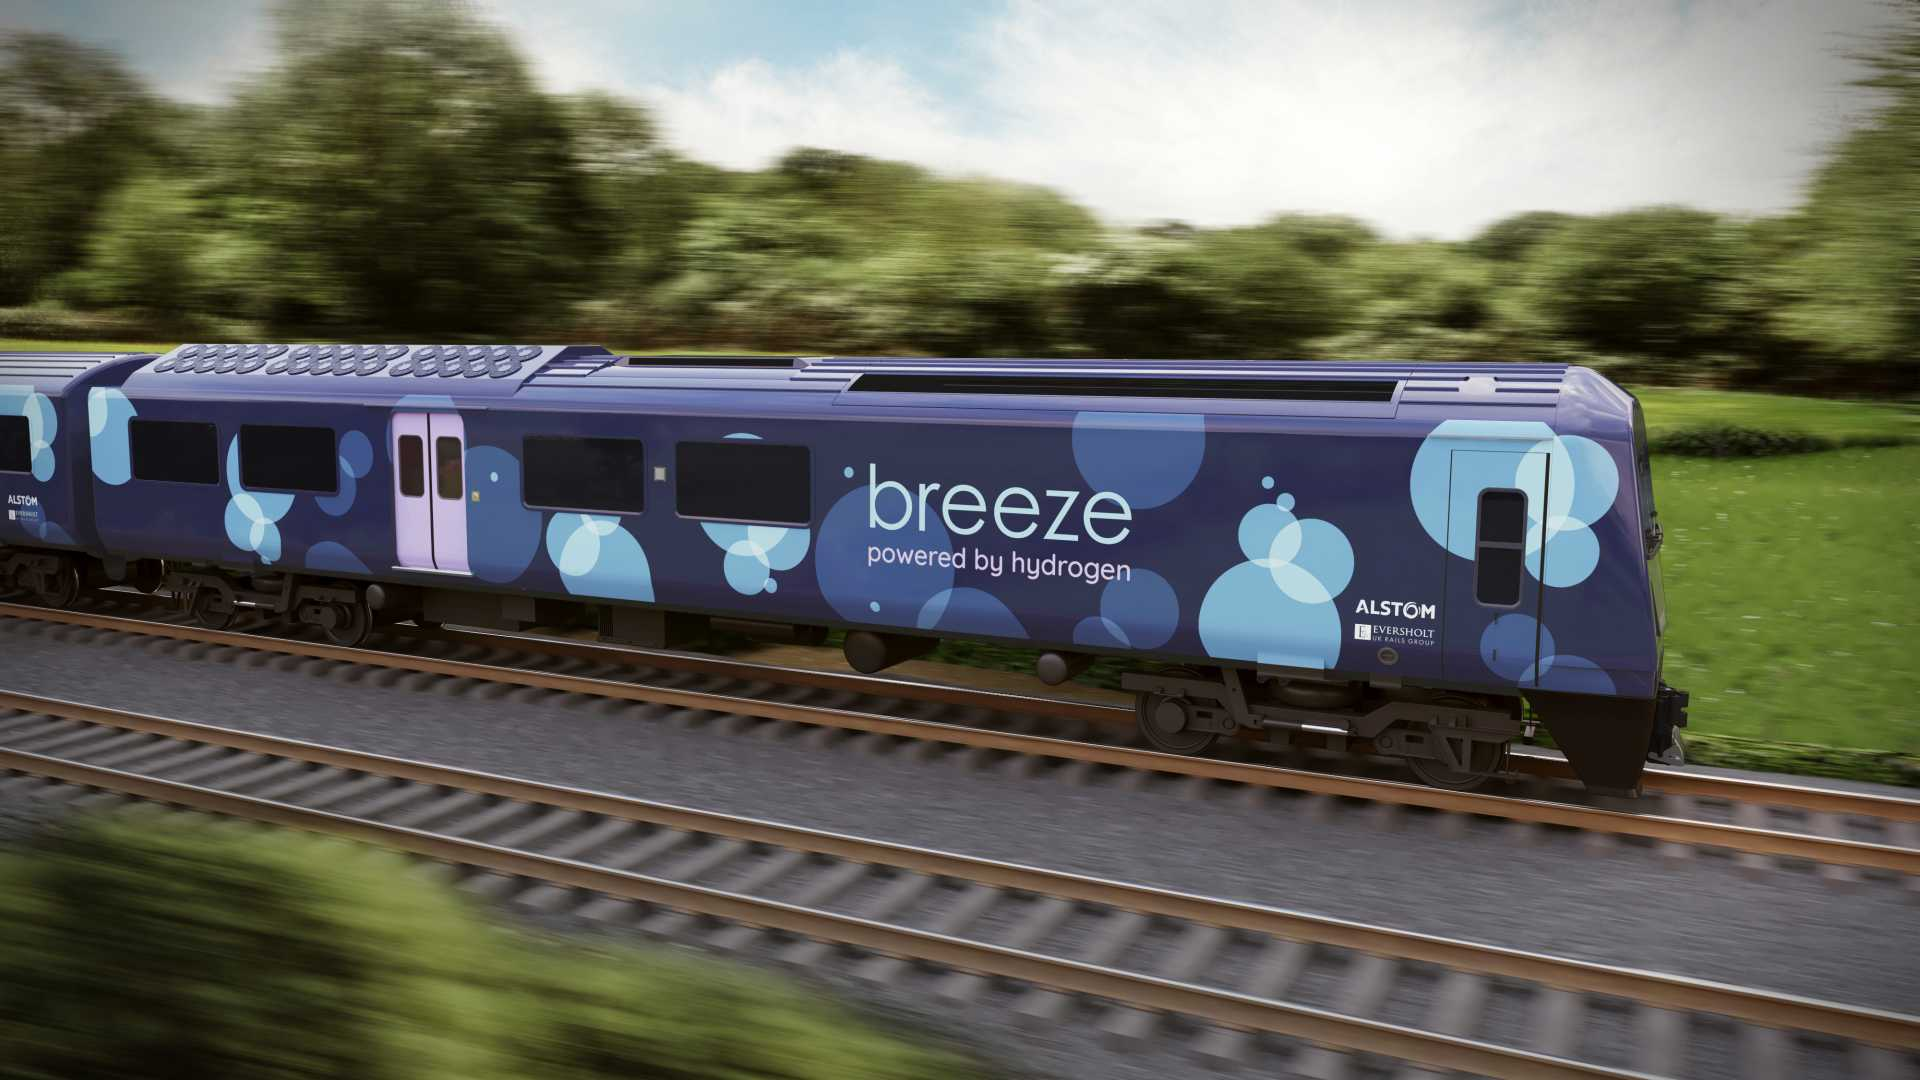 Alstom's Mike Muldoon told The Manufacturer that hydrogen trains should be common on regional routes within the next five years, with first trains appearing in the UK in the next two-three years - image courtesy of Alstom.